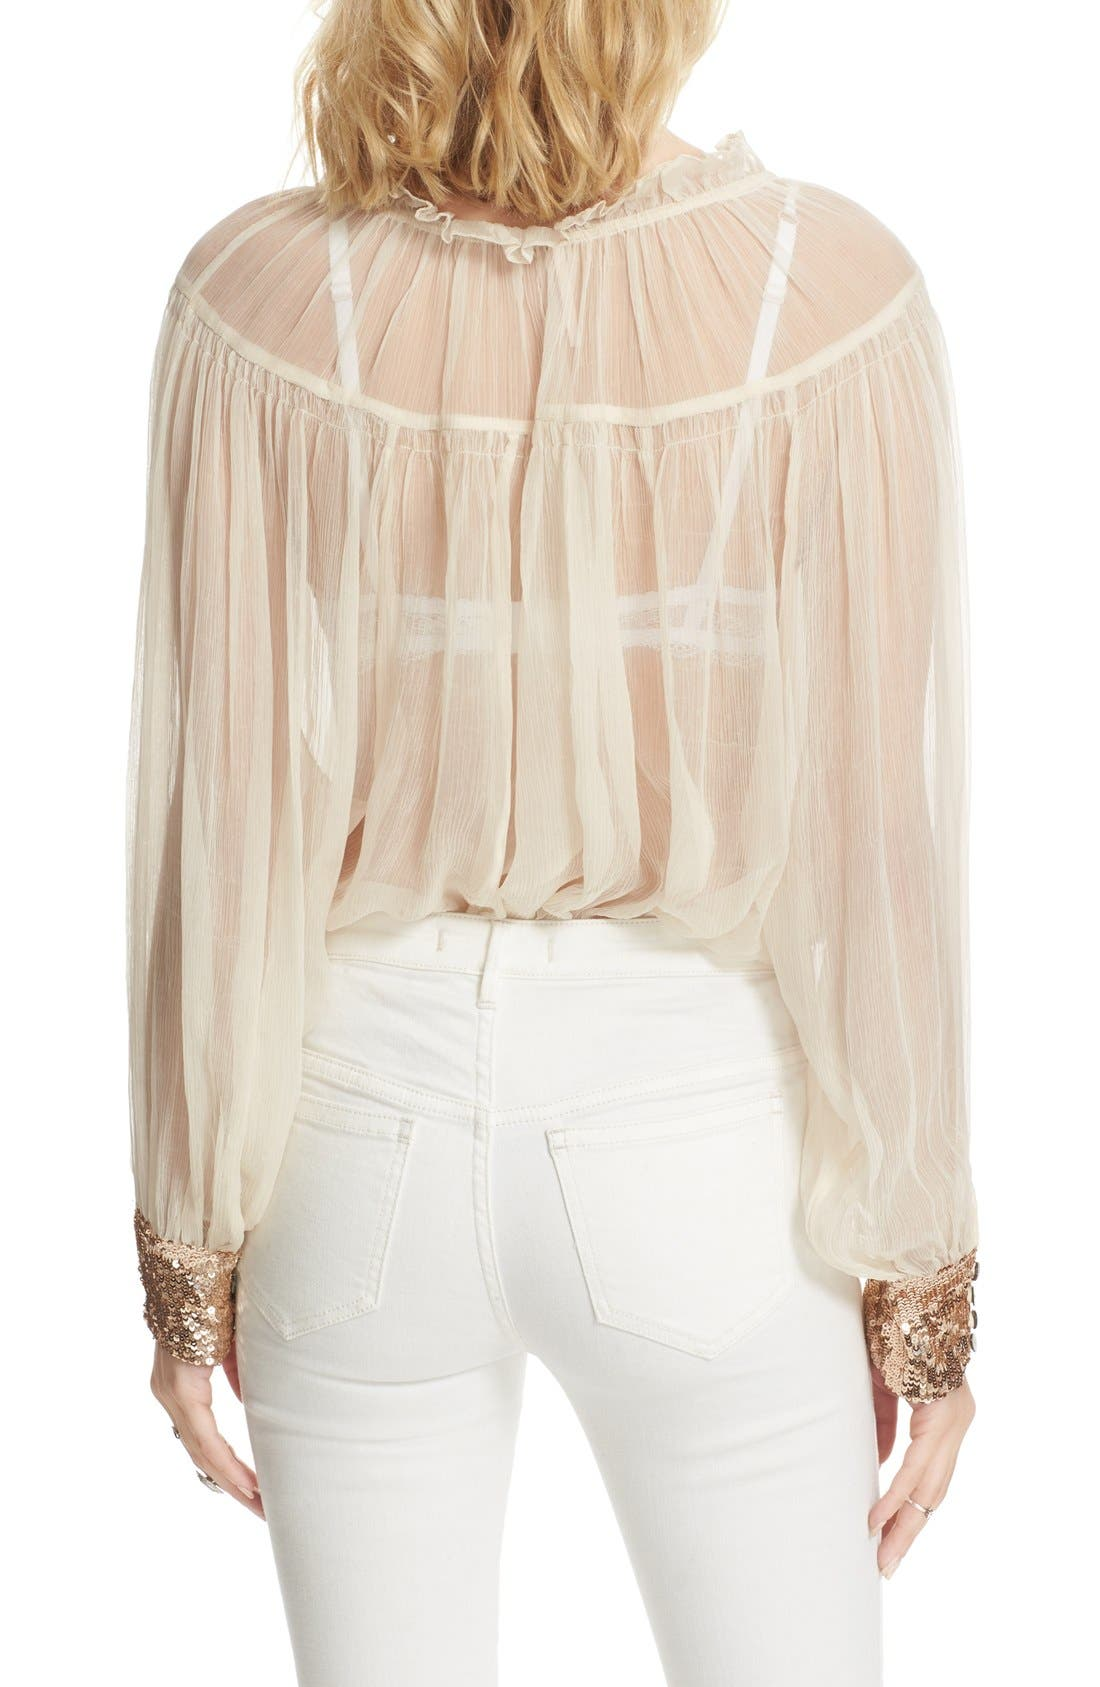 Dream Cuff Blouse,                             Alternate thumbnail 2, color,                             Ivory